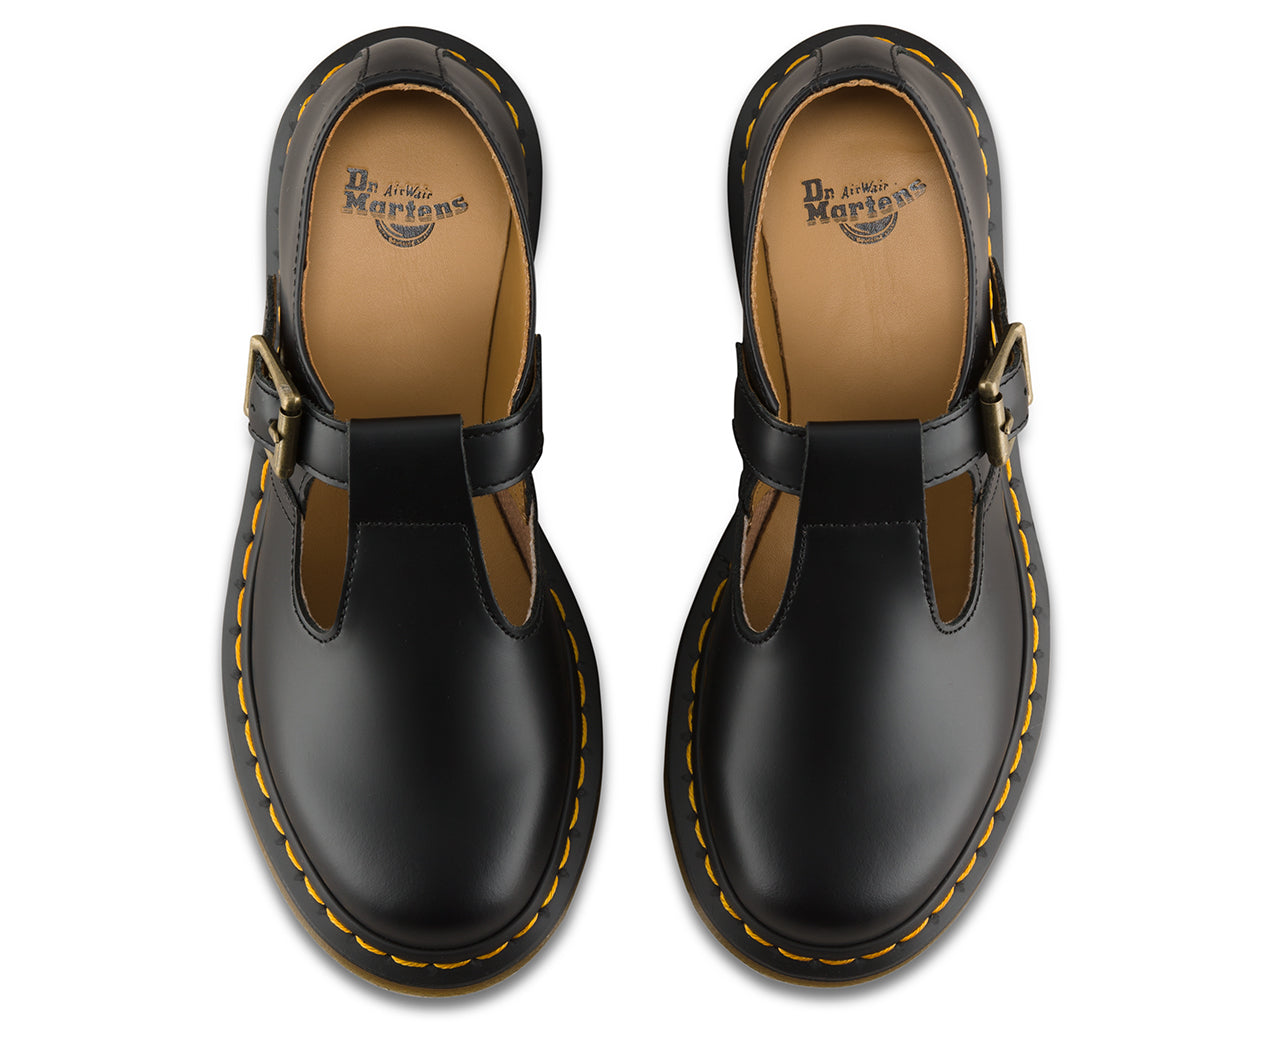 9bebf73975a9 Dr. Martens  Women s Black Polly Smooth Mary Jane - Foot Paths Shoes